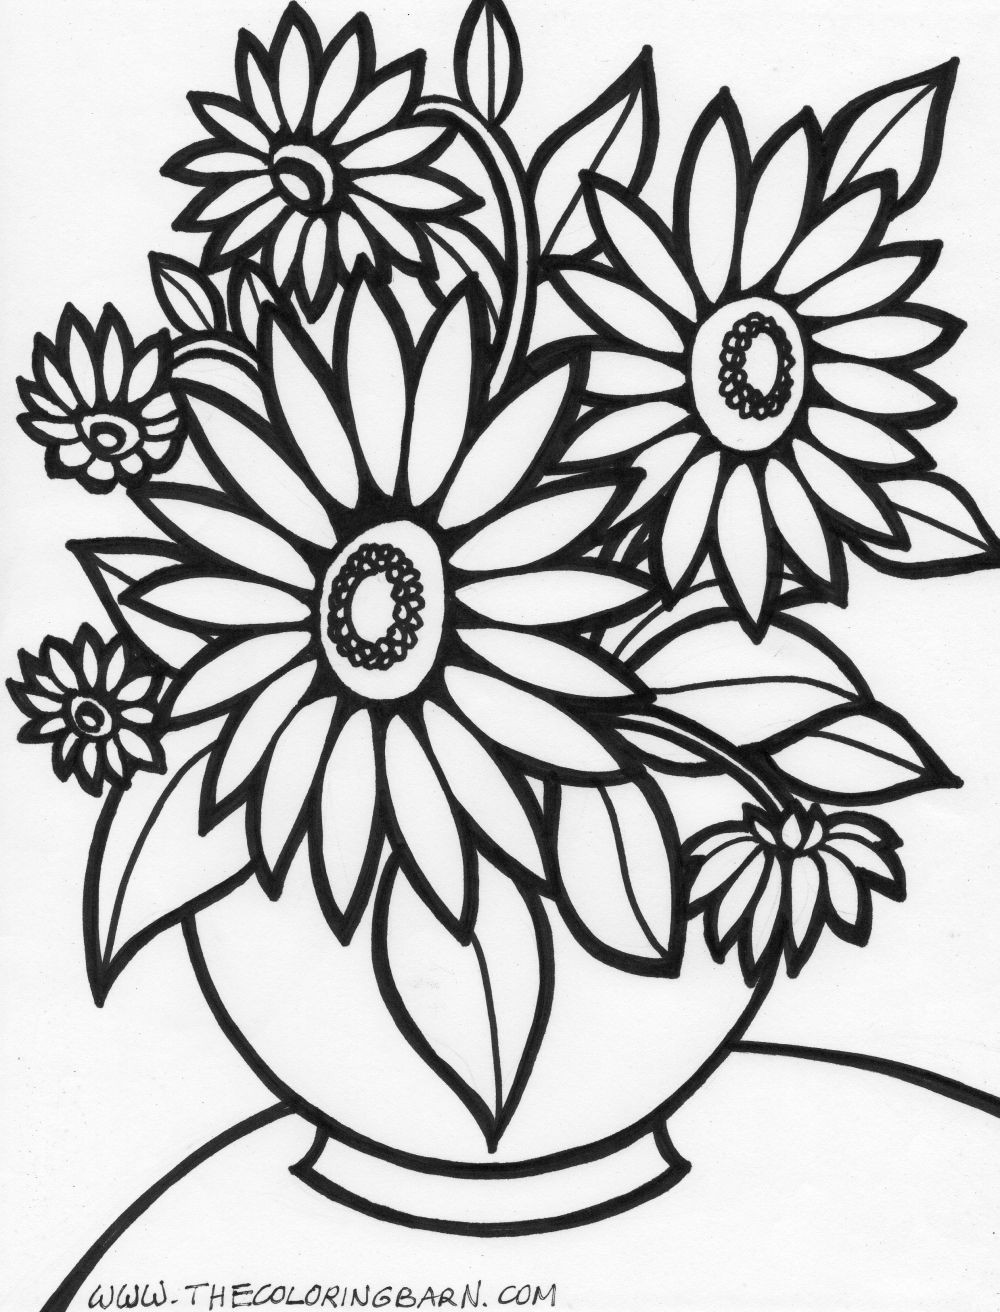 1000x1312 Floral Coloring Pages Book Image Printable Flowers In Picture